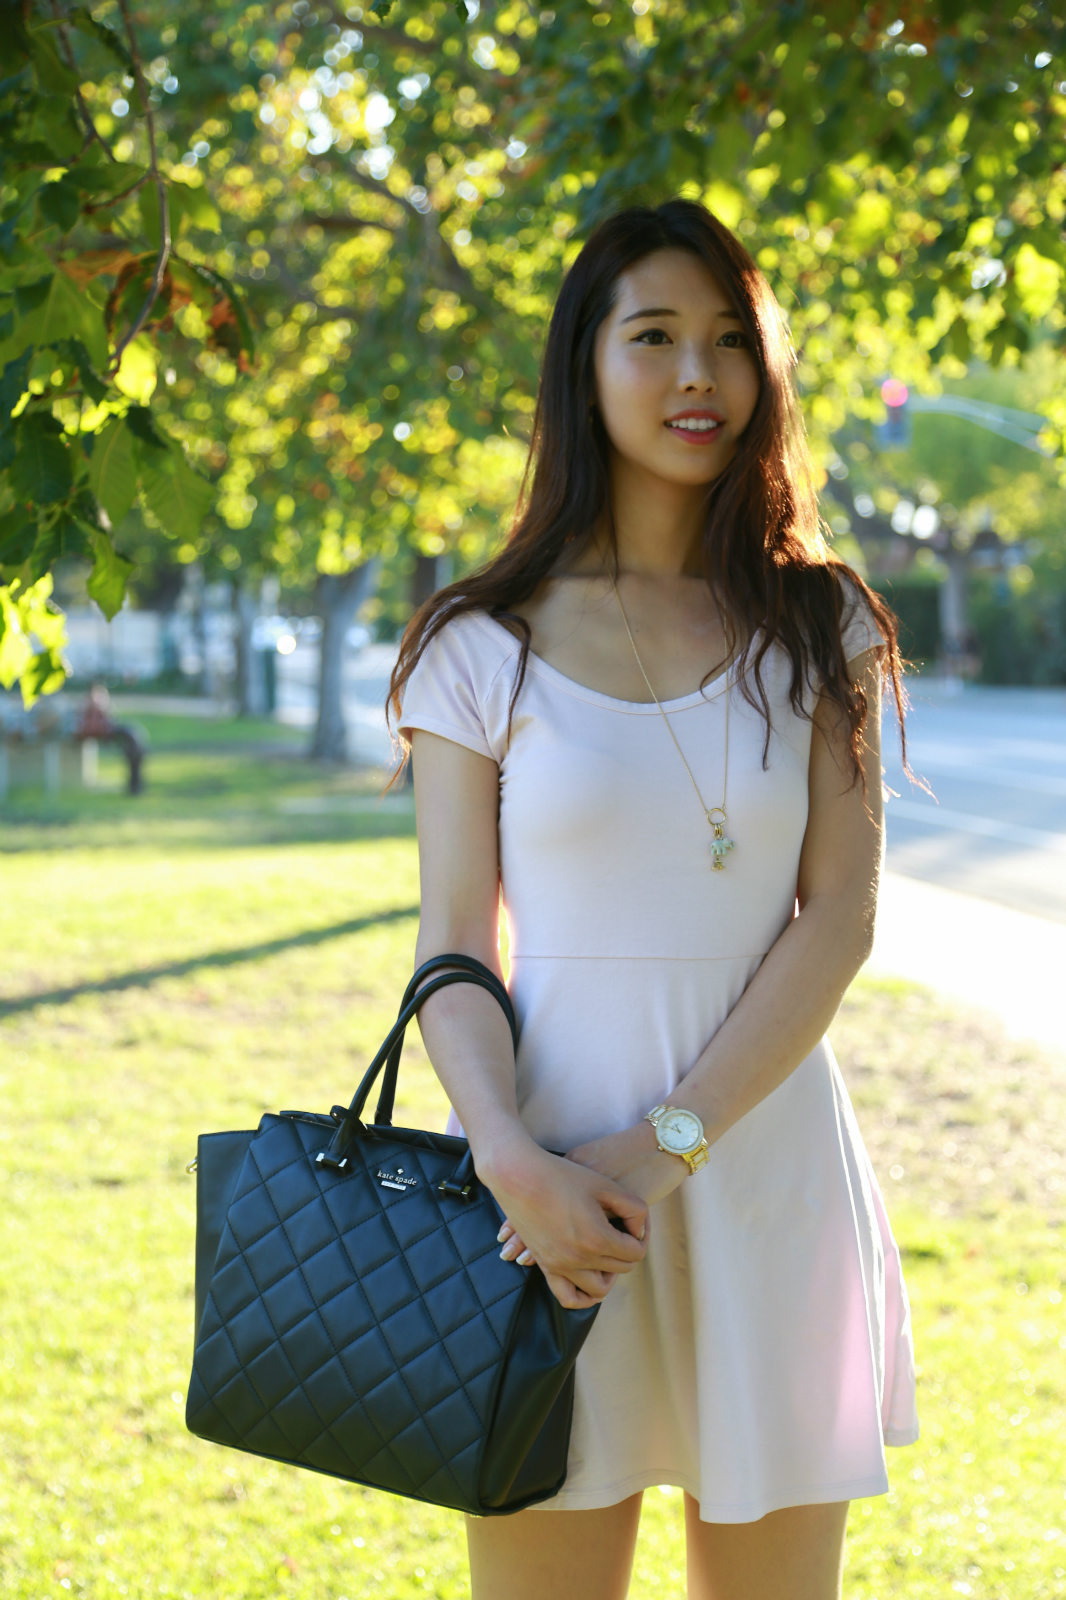 September Once More - Girl with the Blog